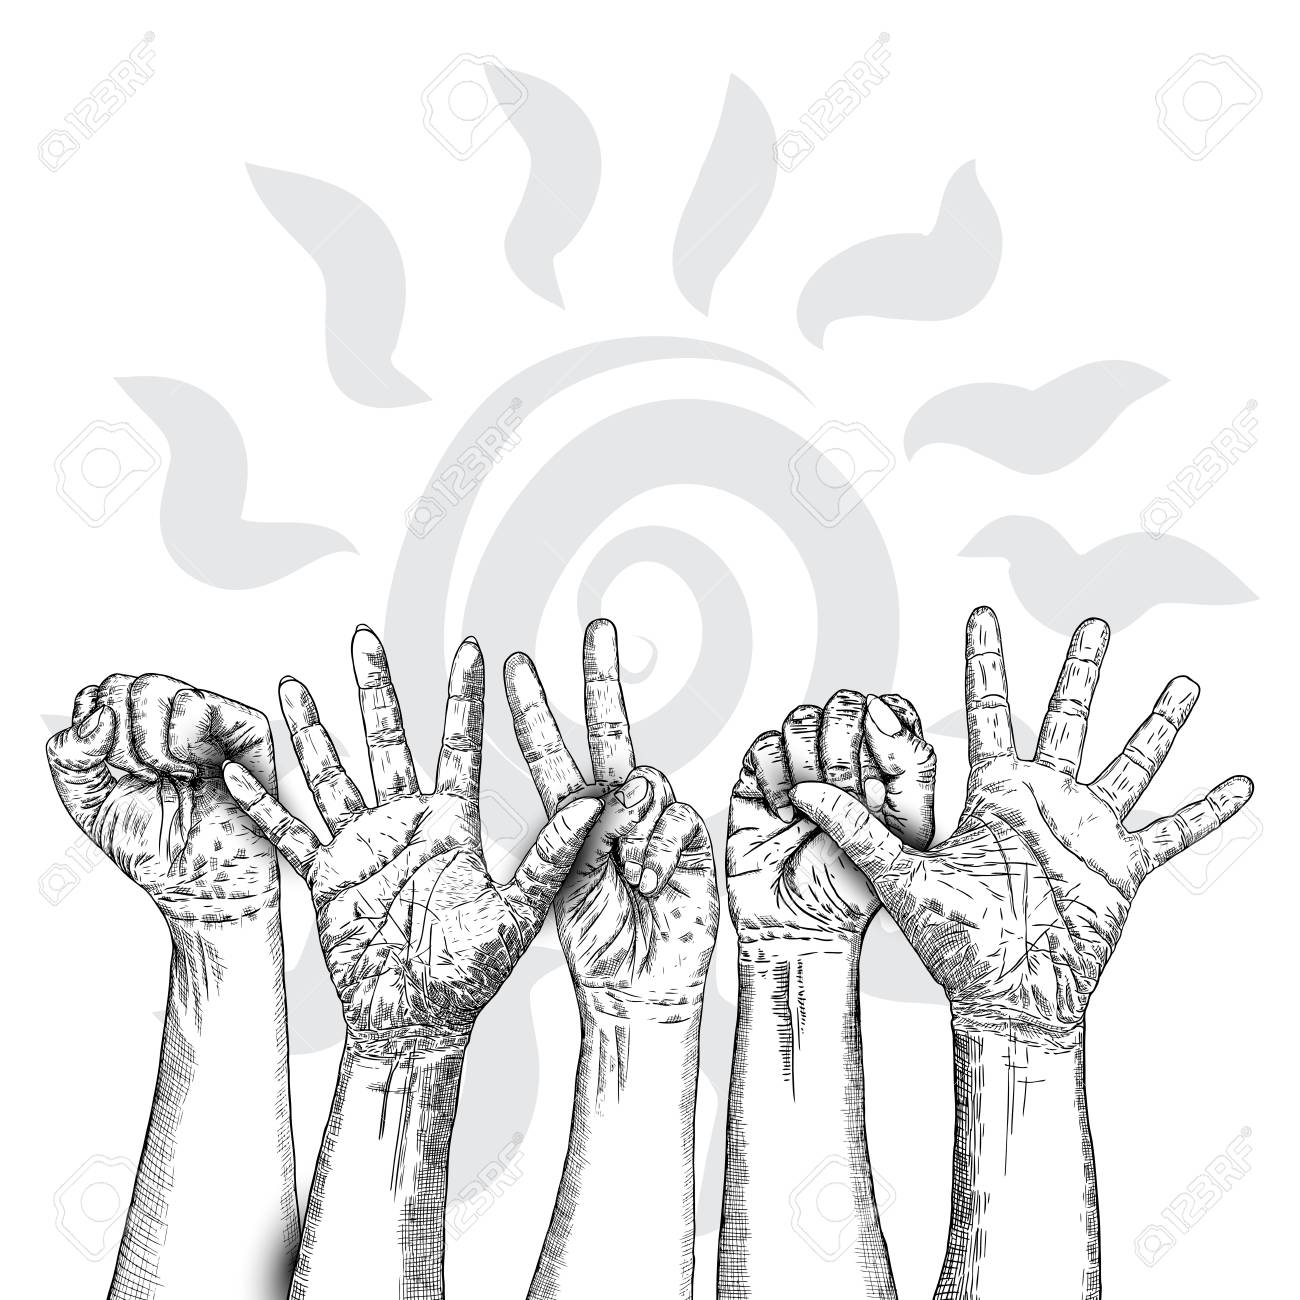 Fists Hands Up Concept Of Unity Revolution Fight Cooperation Royalty Free Cliparts Vectors And Stock Illustration Image 116843853